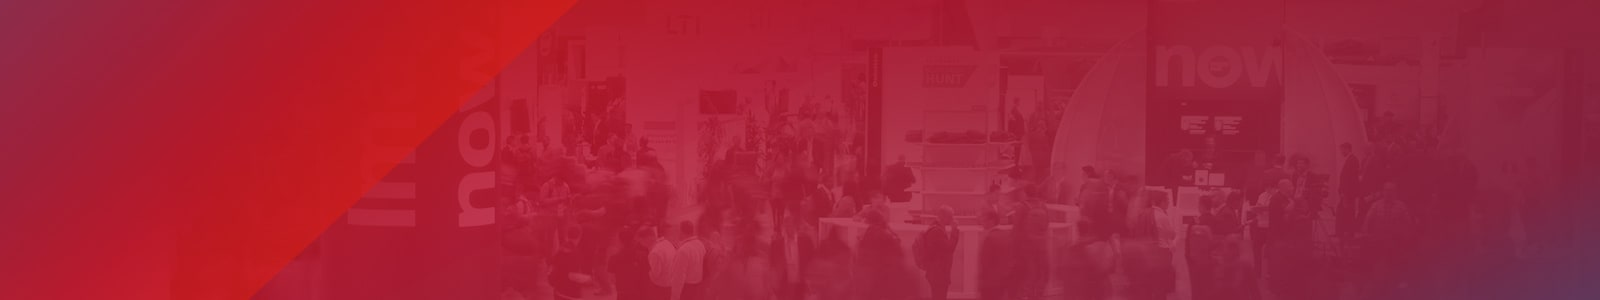 Oracle OpenWorld Exhibitor Listing